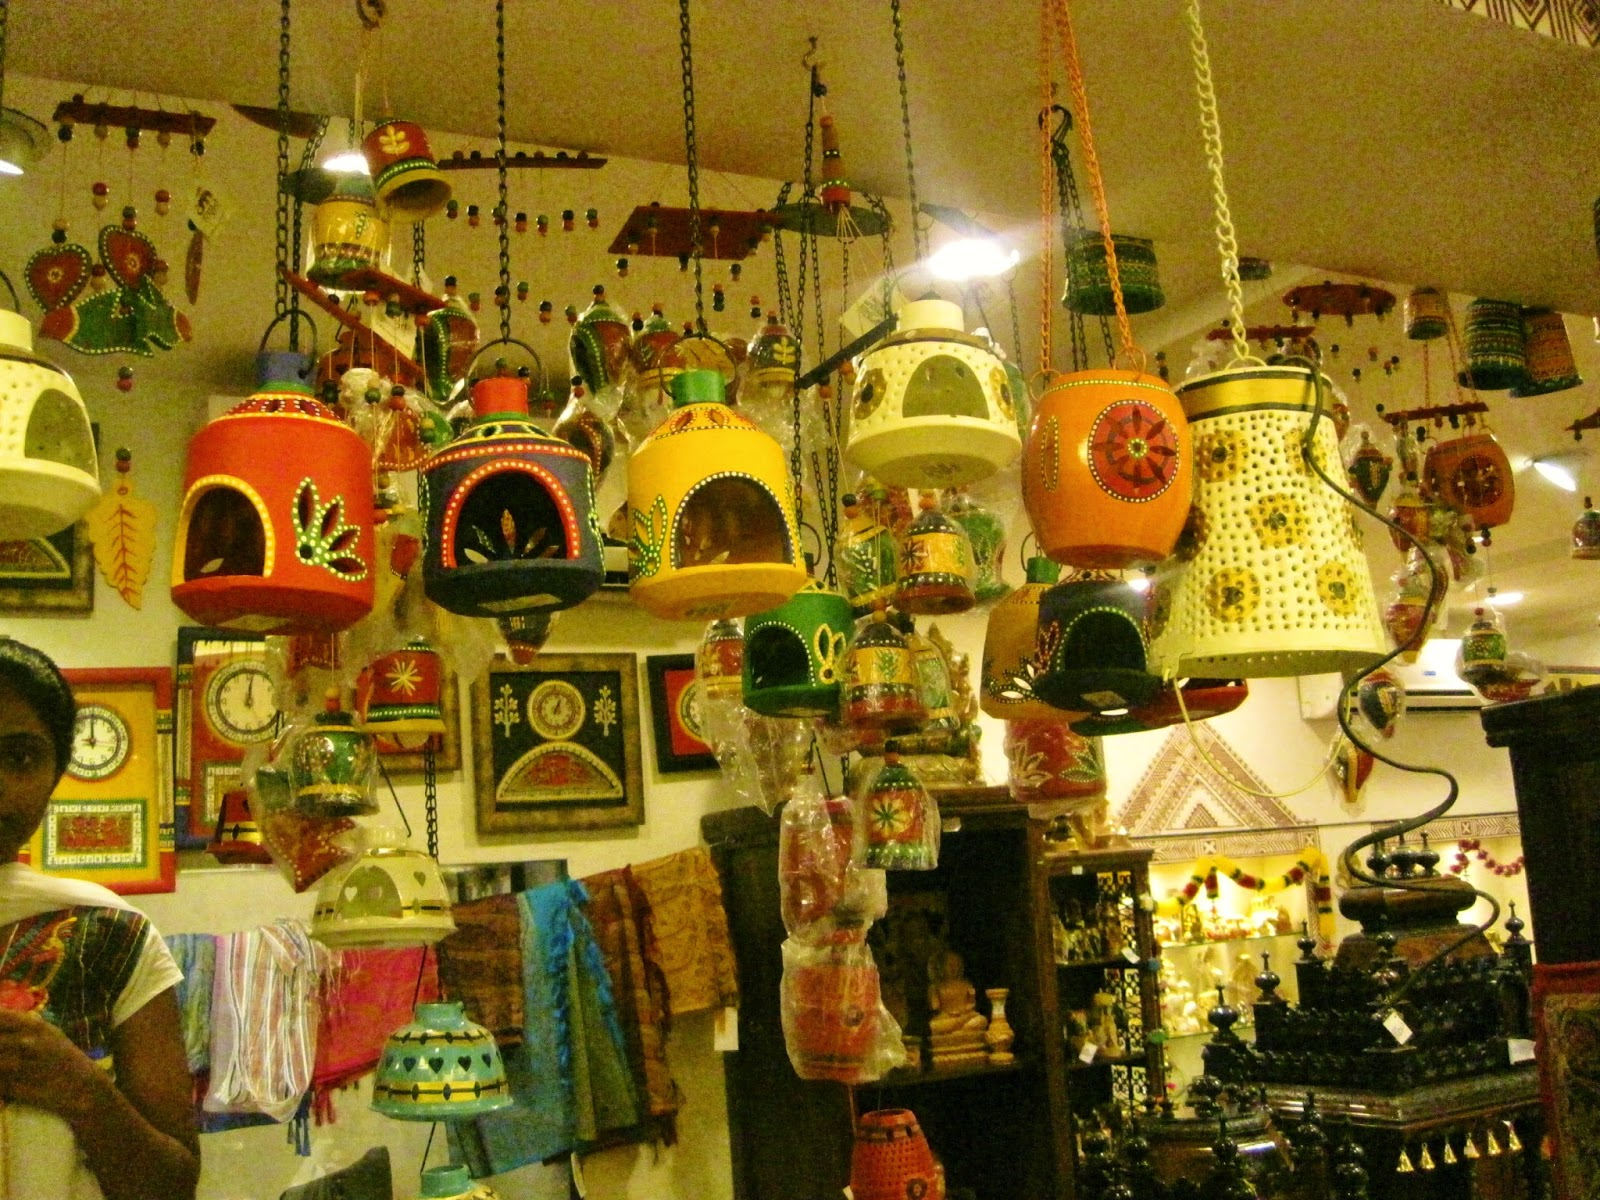 Fish aquarium in jayanagar - A Good Variety Of Wind Chimes Hanging Lamps Lanterns Are Up For Sale Costs Around Rs 350 To Rs 500 Available In Metal As Well As Terracotta